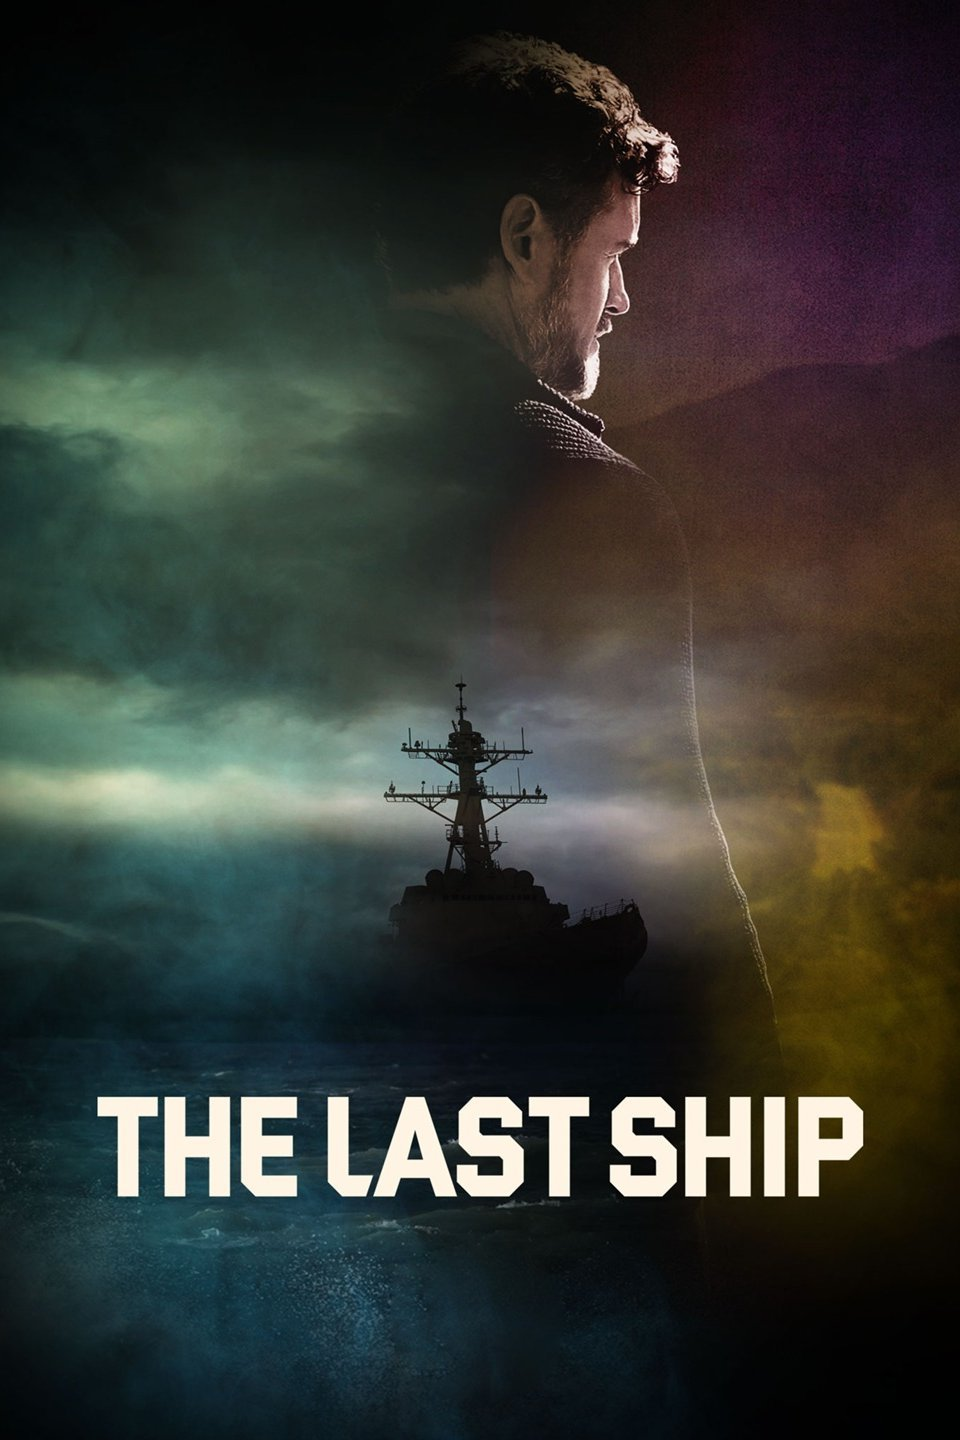 The Last Ship S01 Complete 480p WEB-DL Free Tv Shows Download